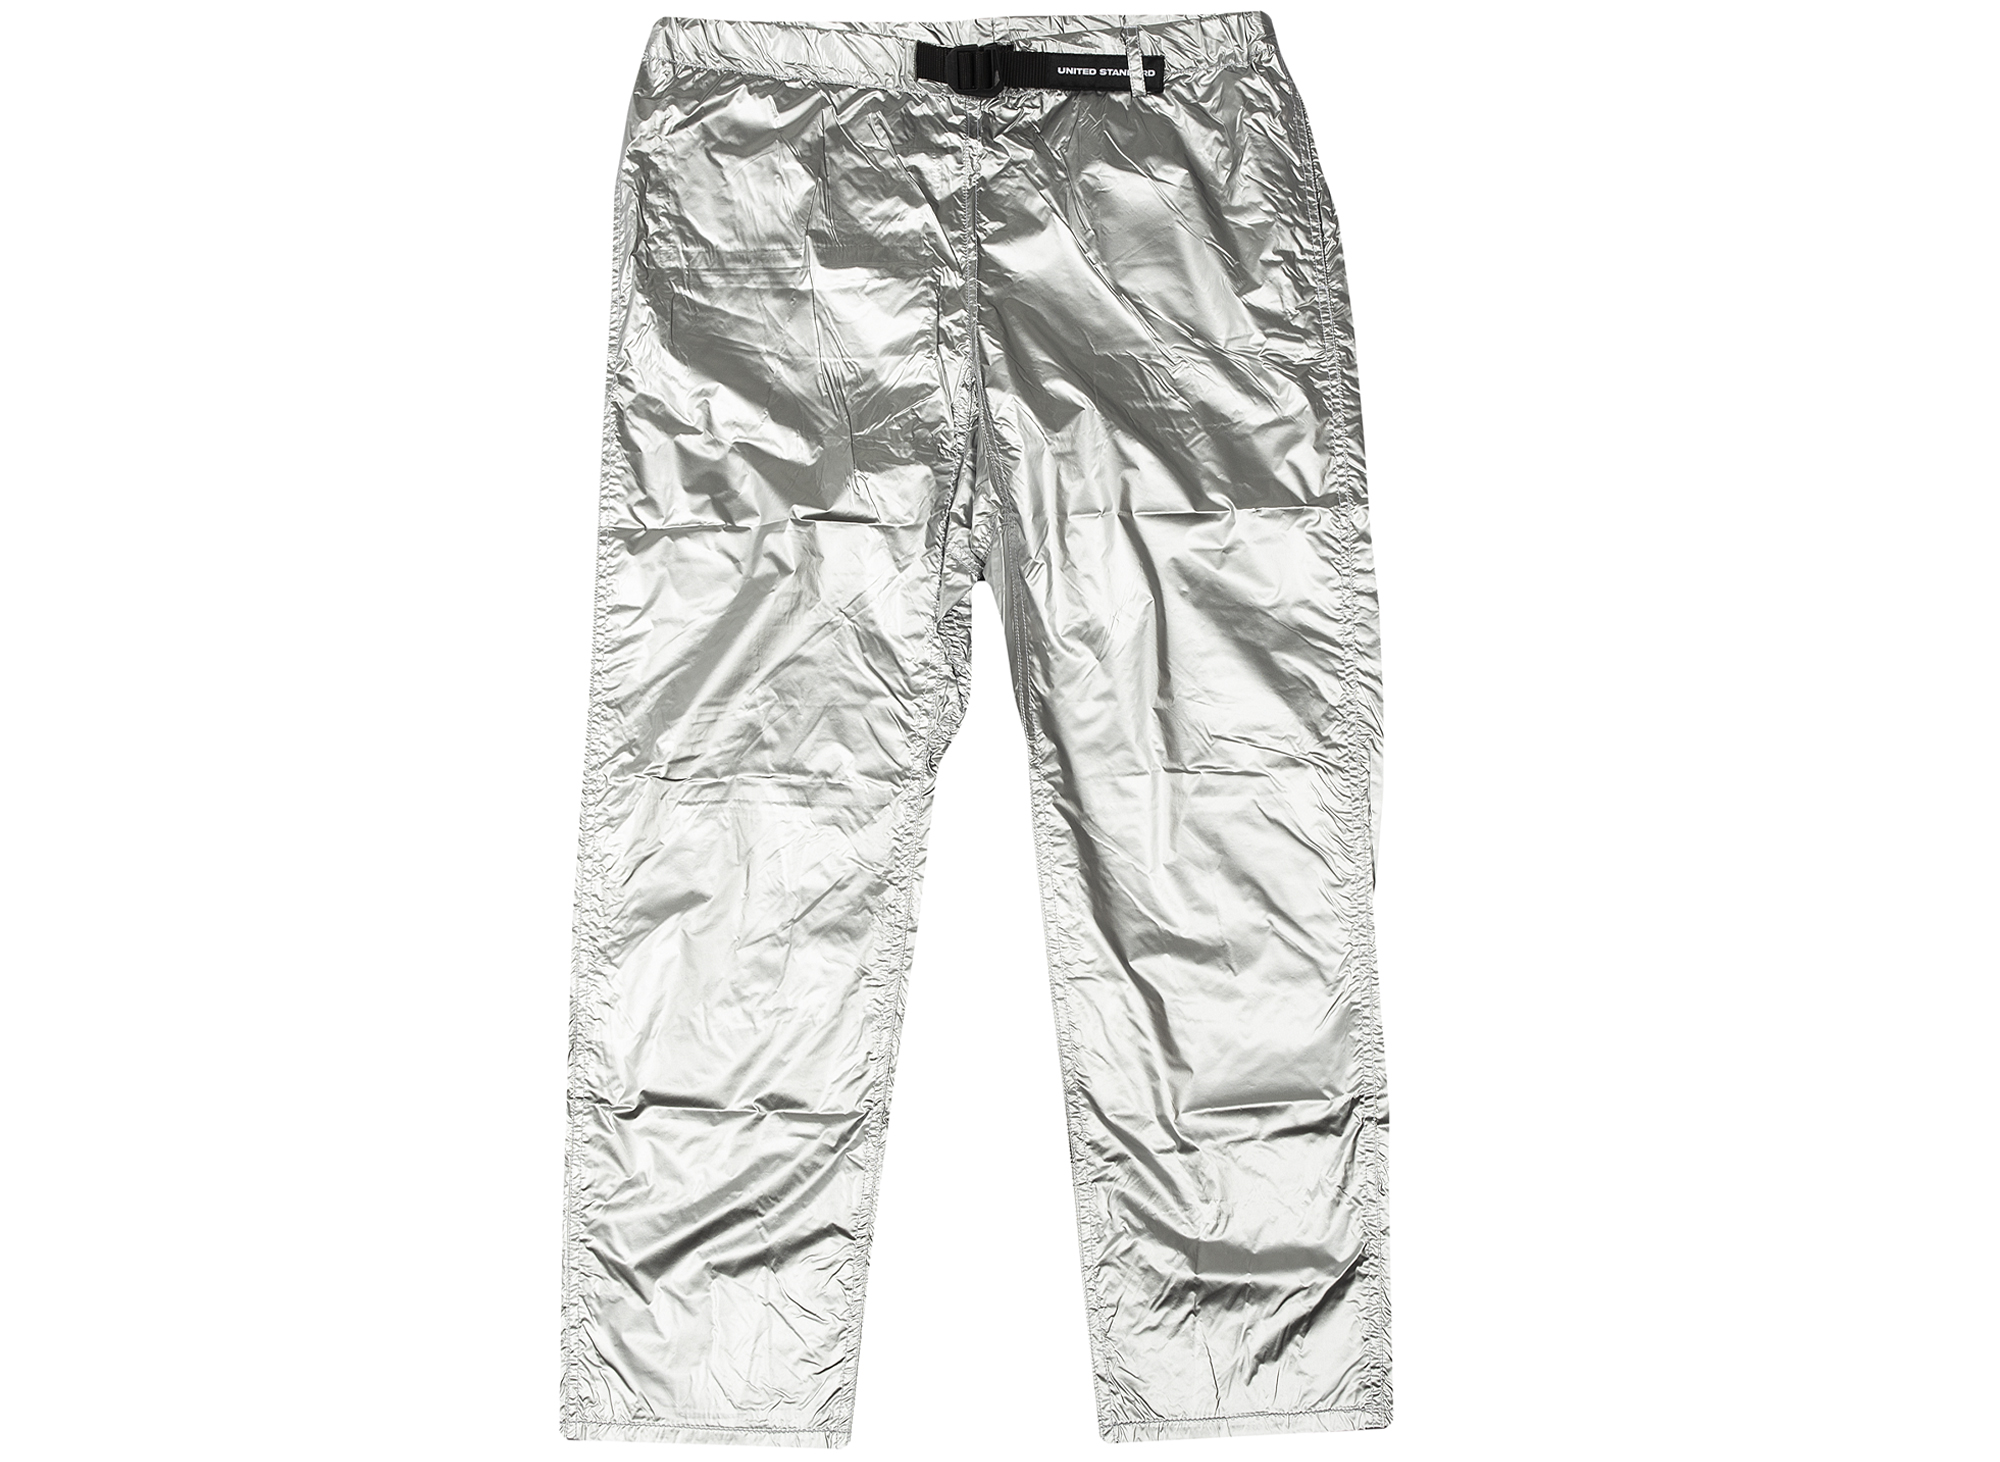 United Standard Silver Trek Pants